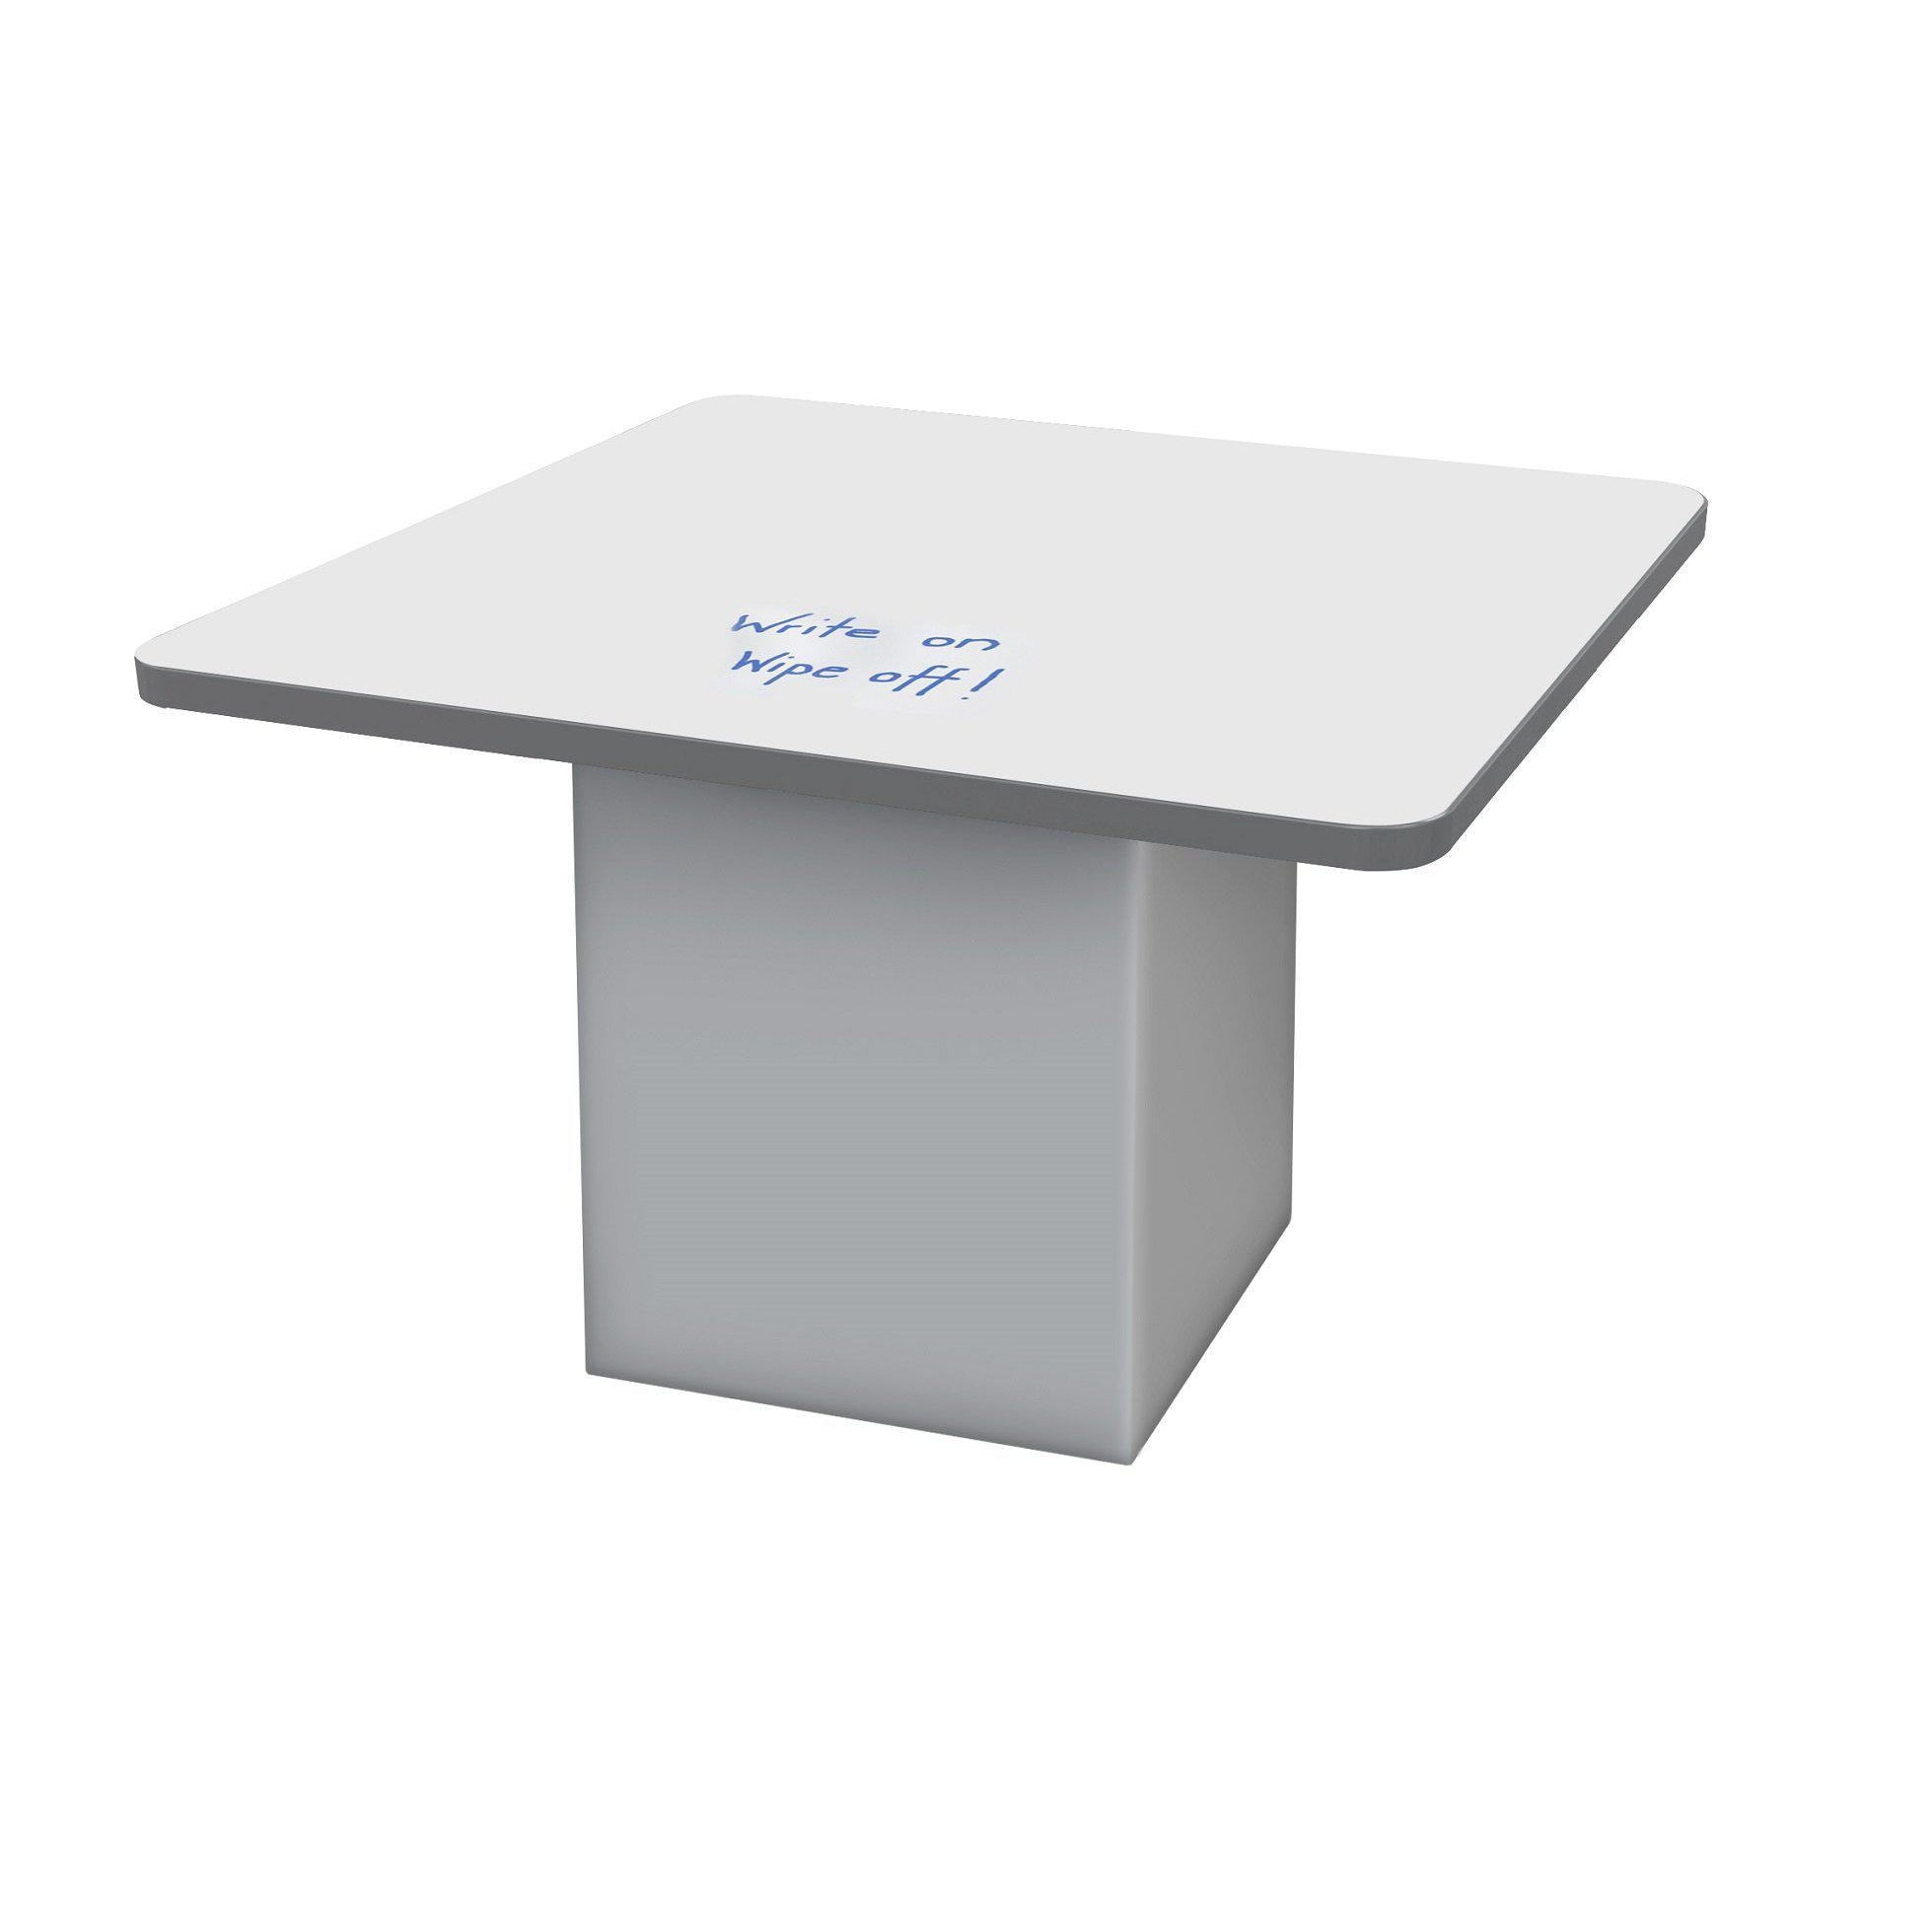 "Sonik™ Soft Seating 48"" Square Table with Markerboard Top-Soft Seating-29""-Markerboard/Gray-Frost"